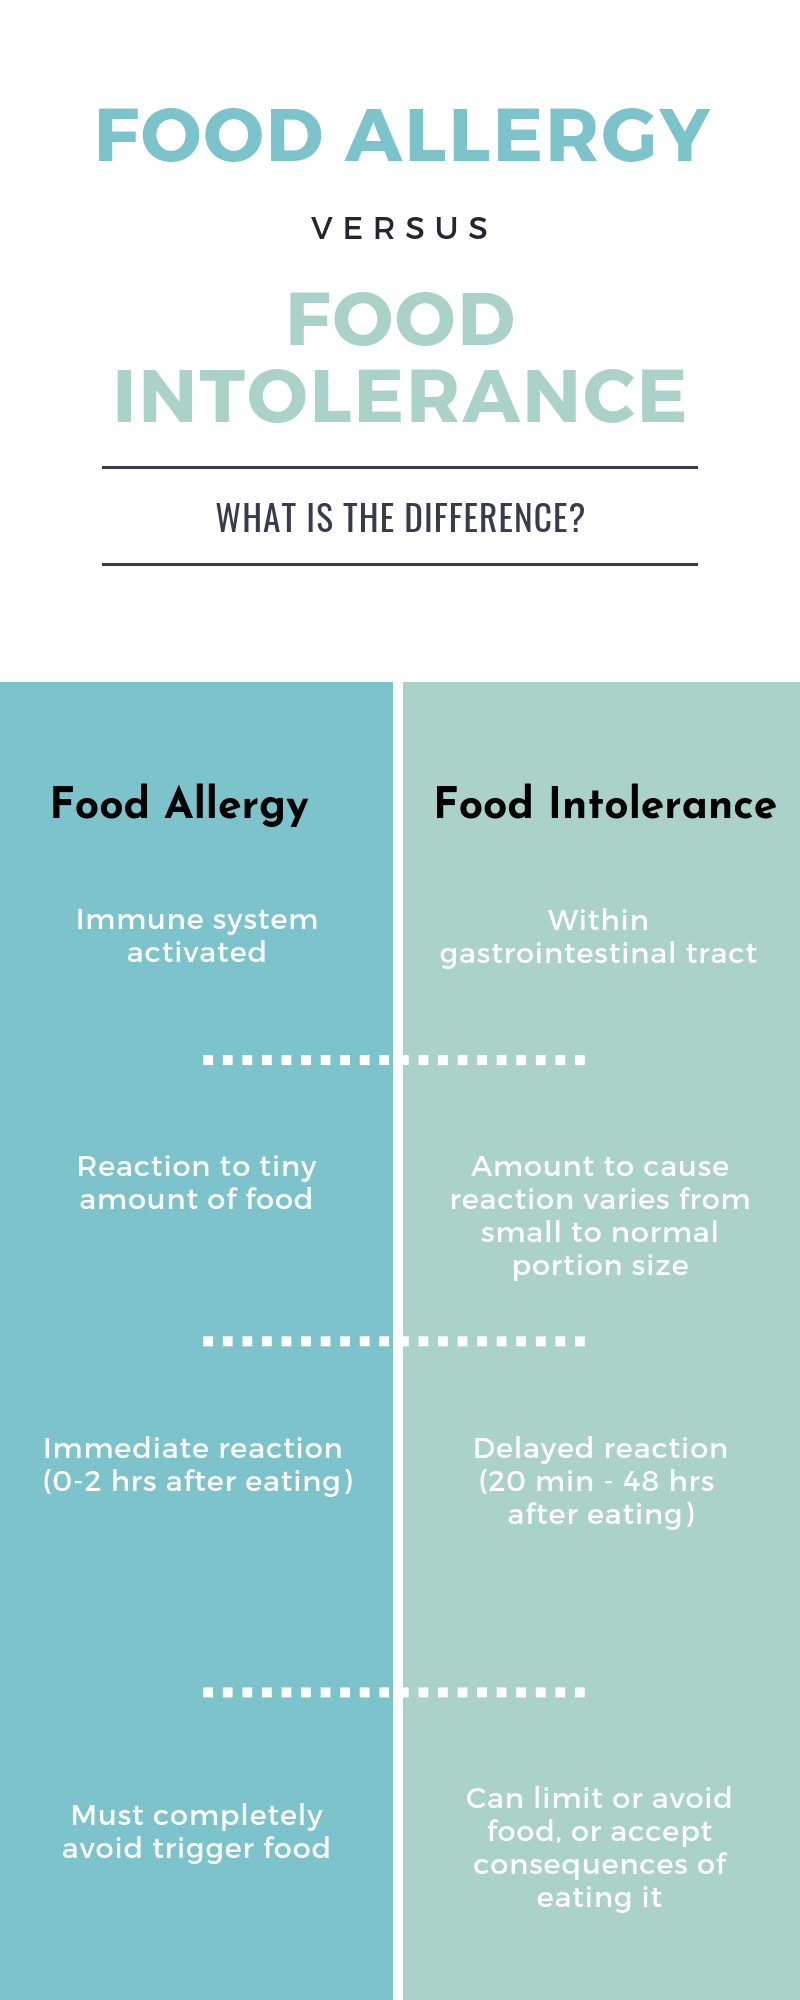 chart of differences between food allergies and food intolerances